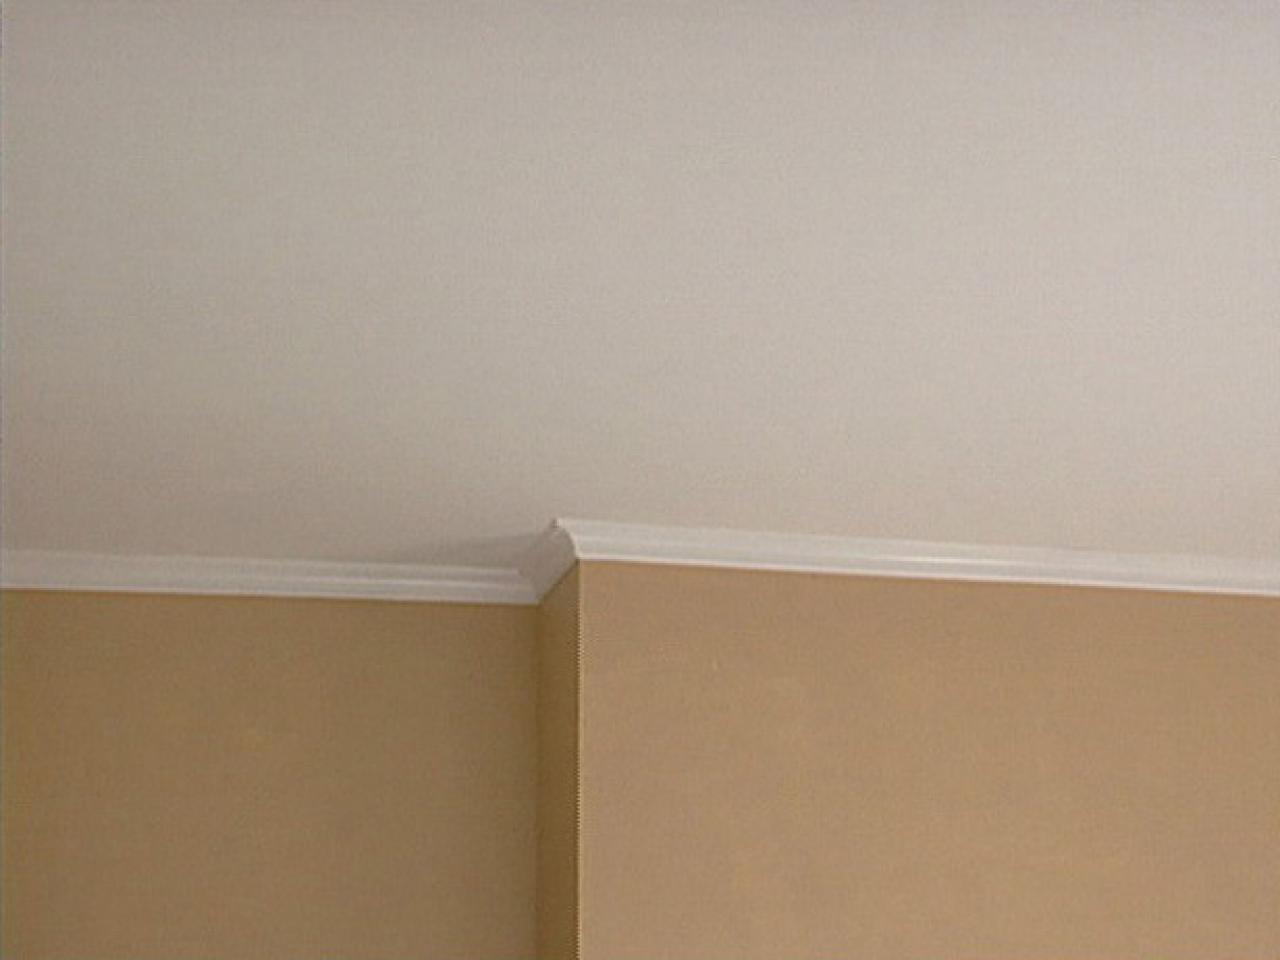 How to install decorative molding on walls for 9 inch crown molding